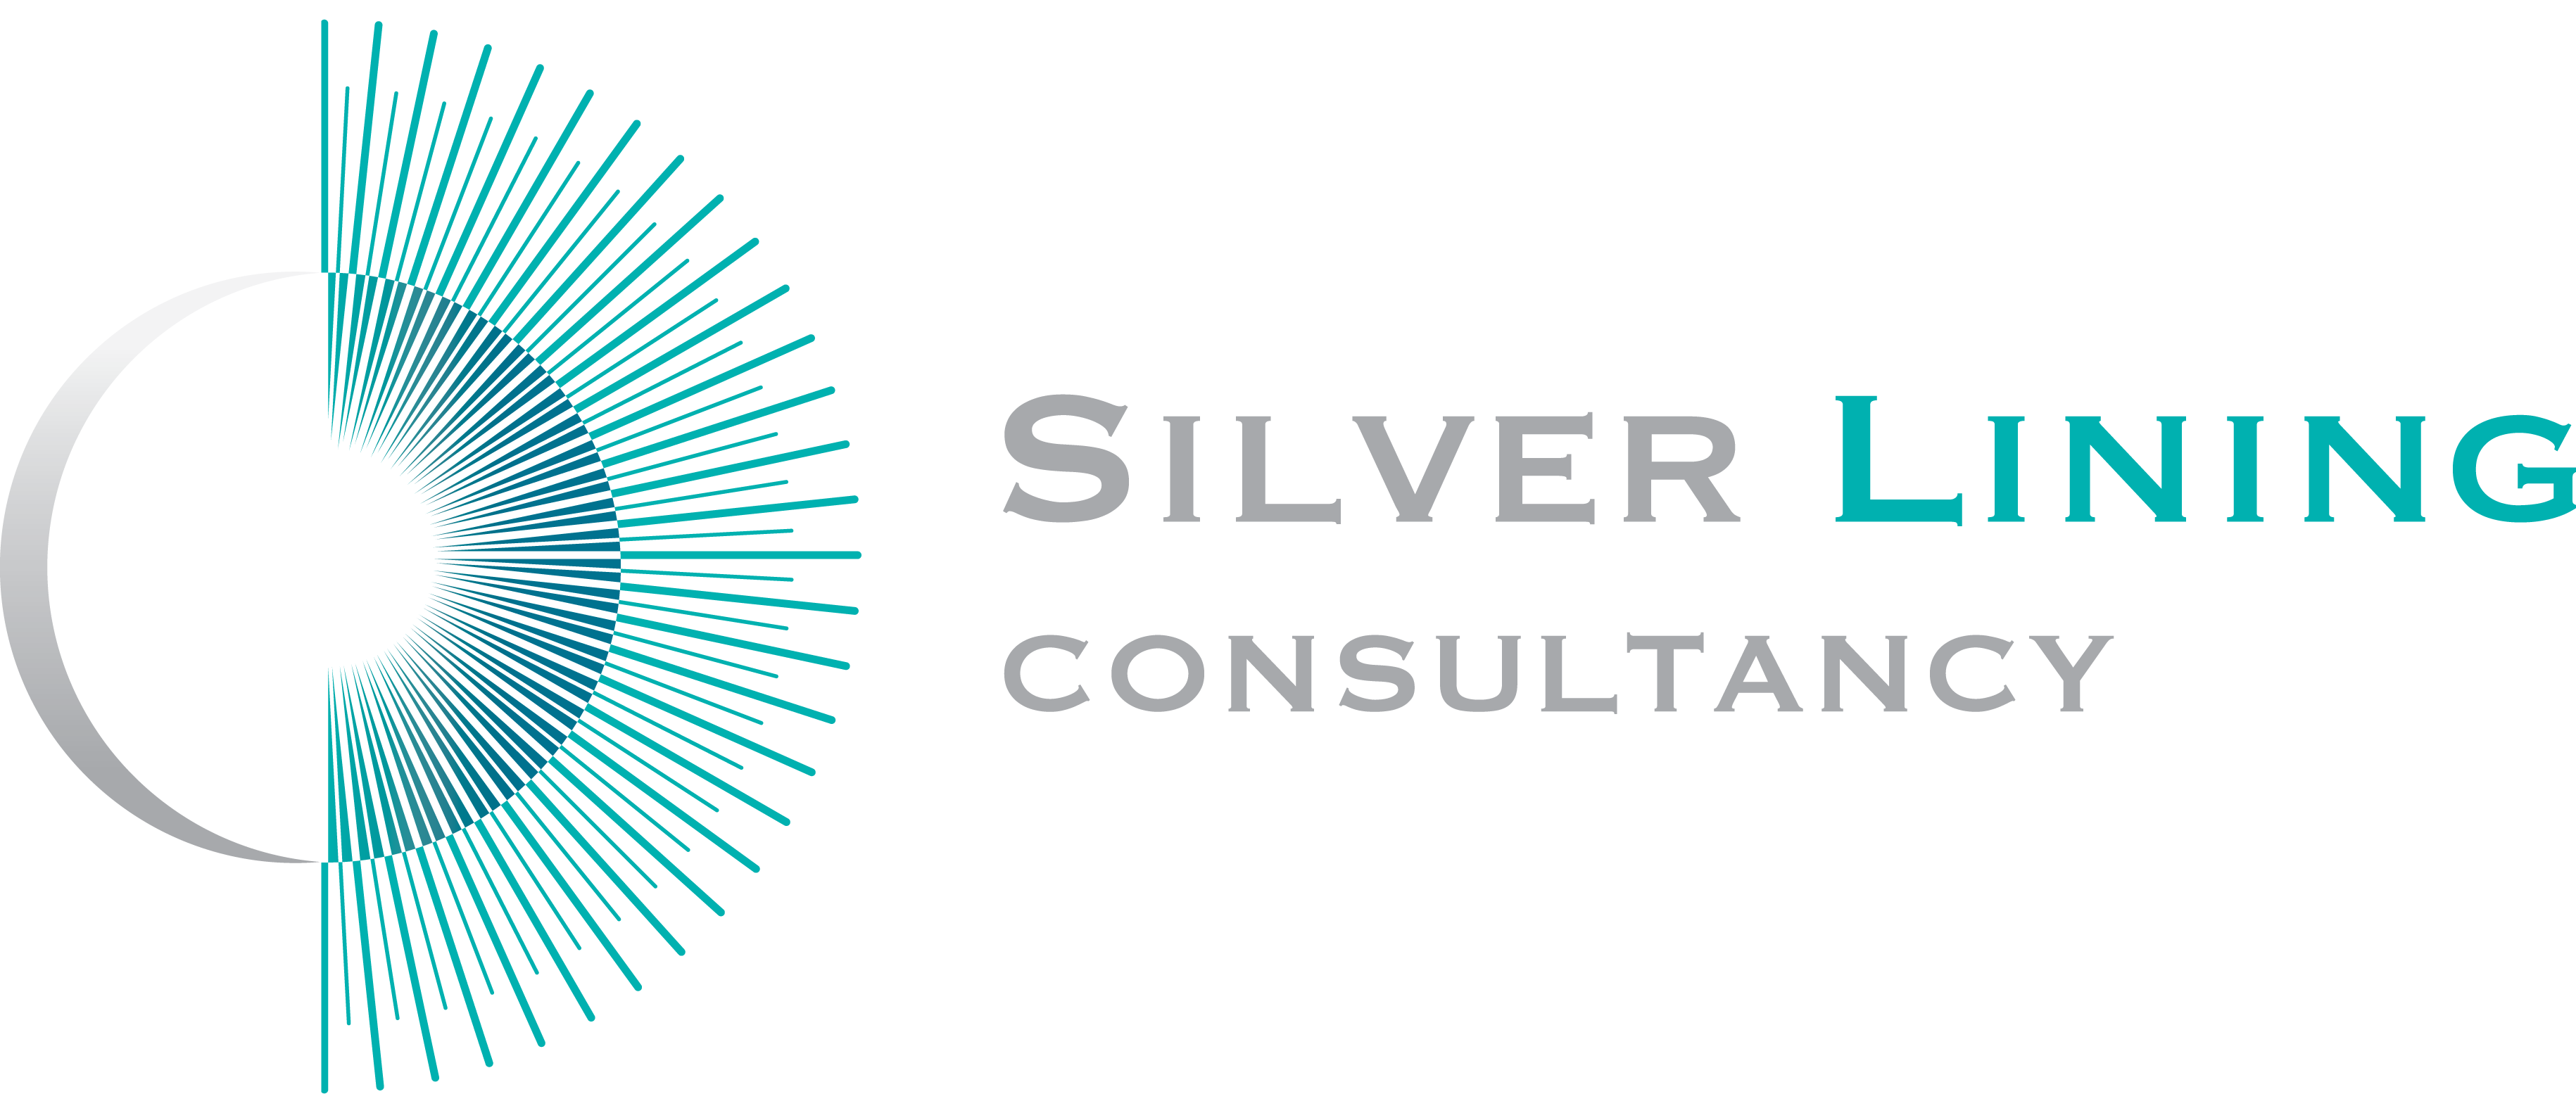 Silver-Lining-Consultancy-LOGO-clear-back